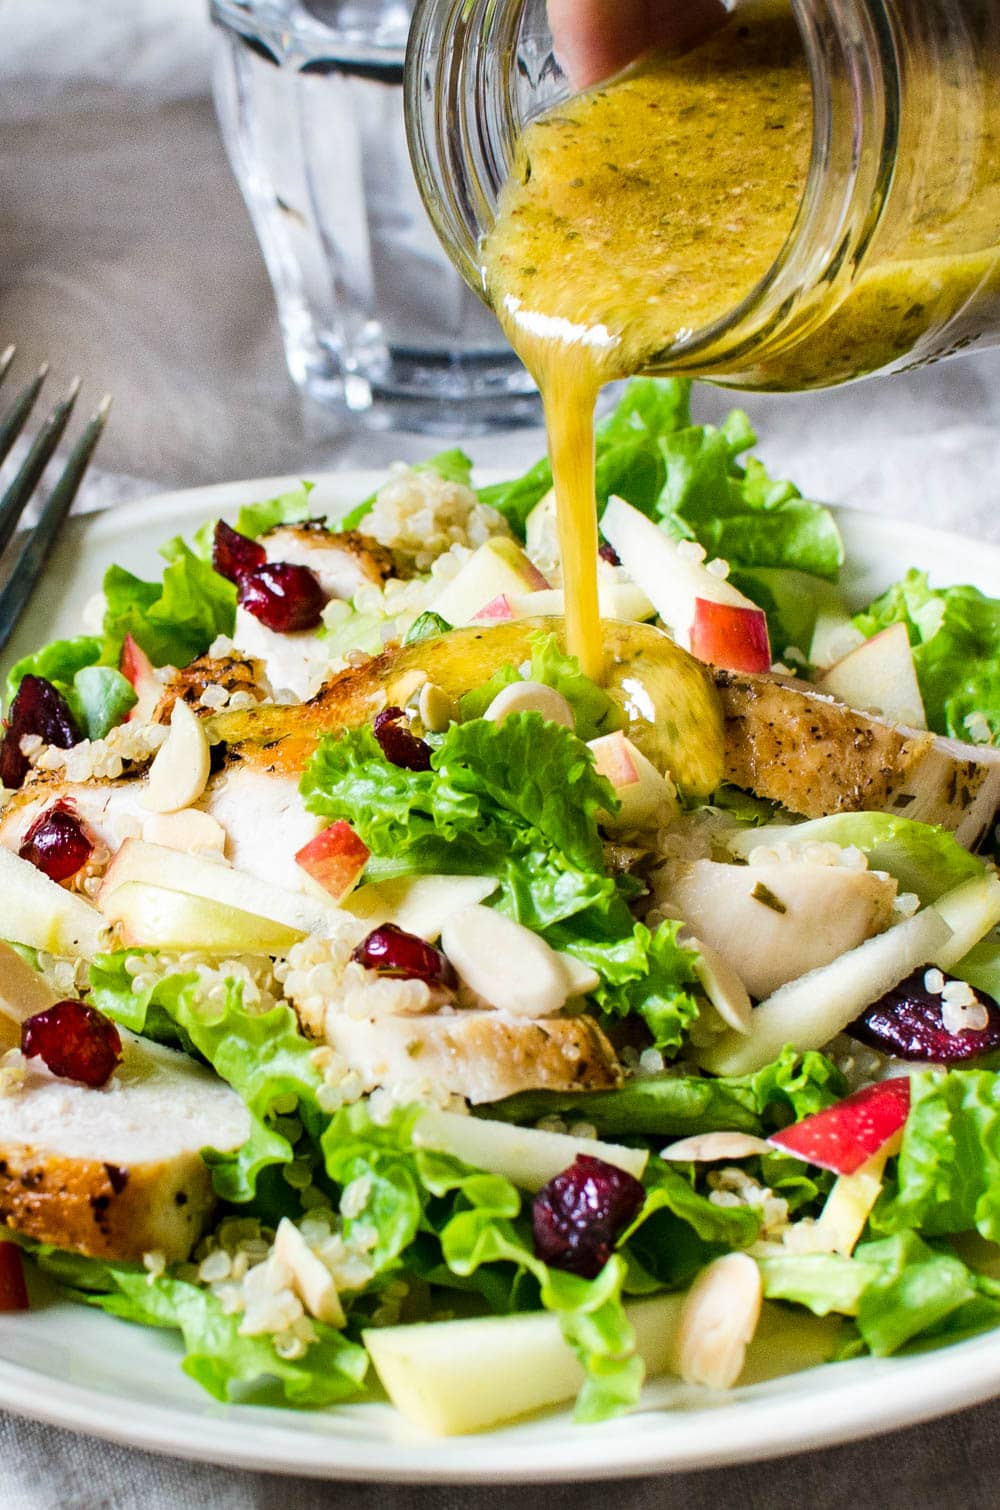 pouring dressing on the salad.